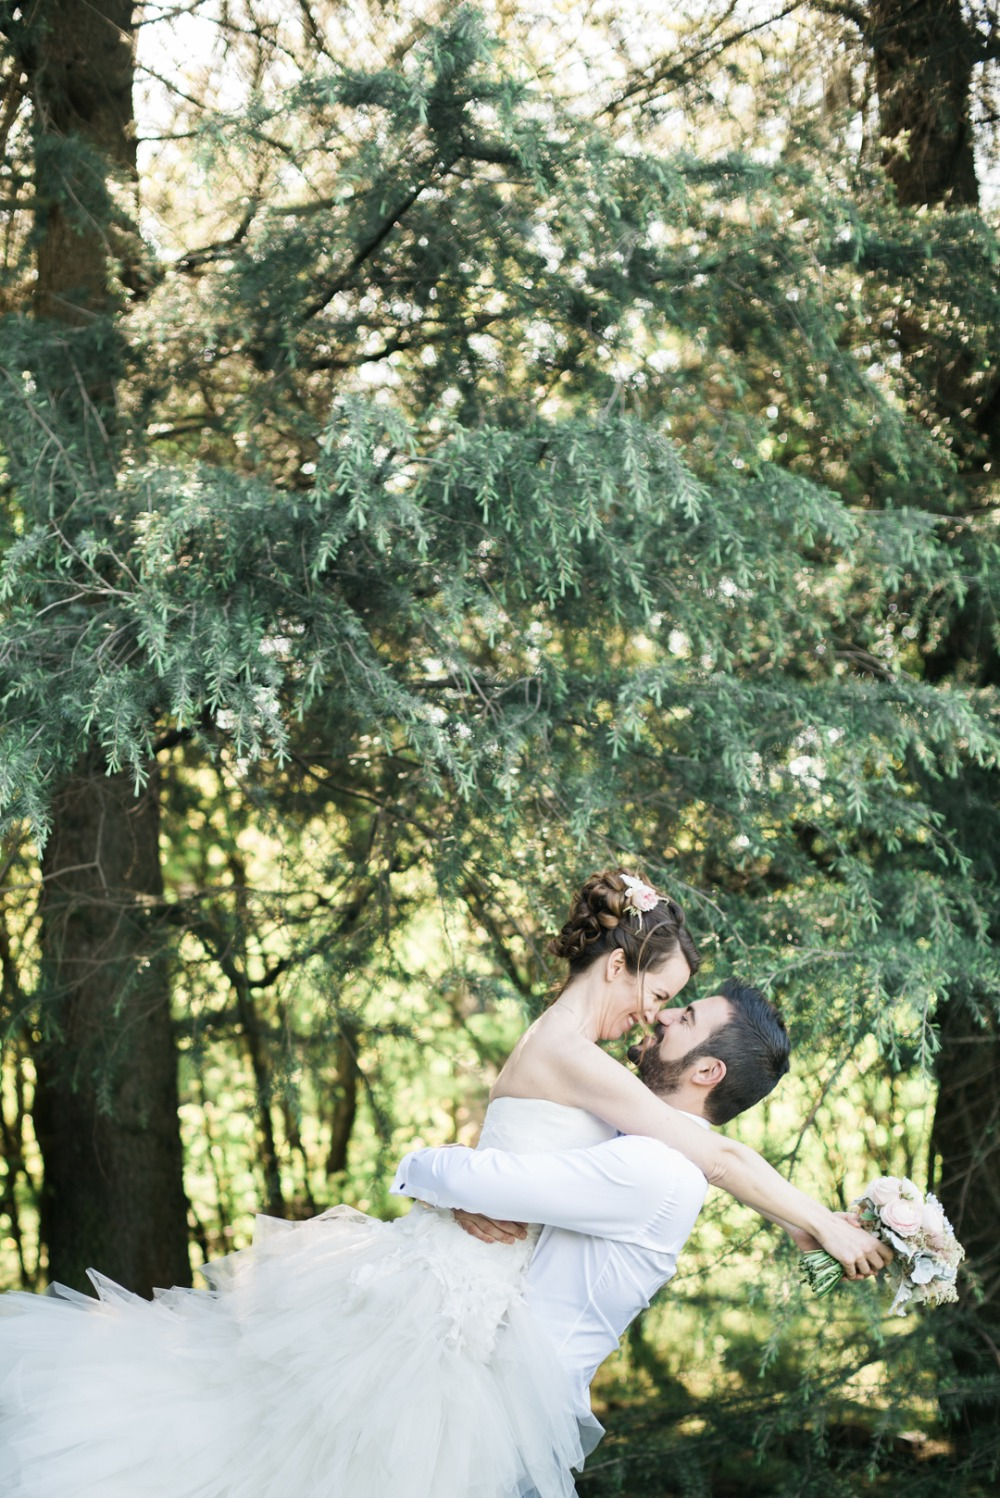 cute wedding photo of newlyweds in love